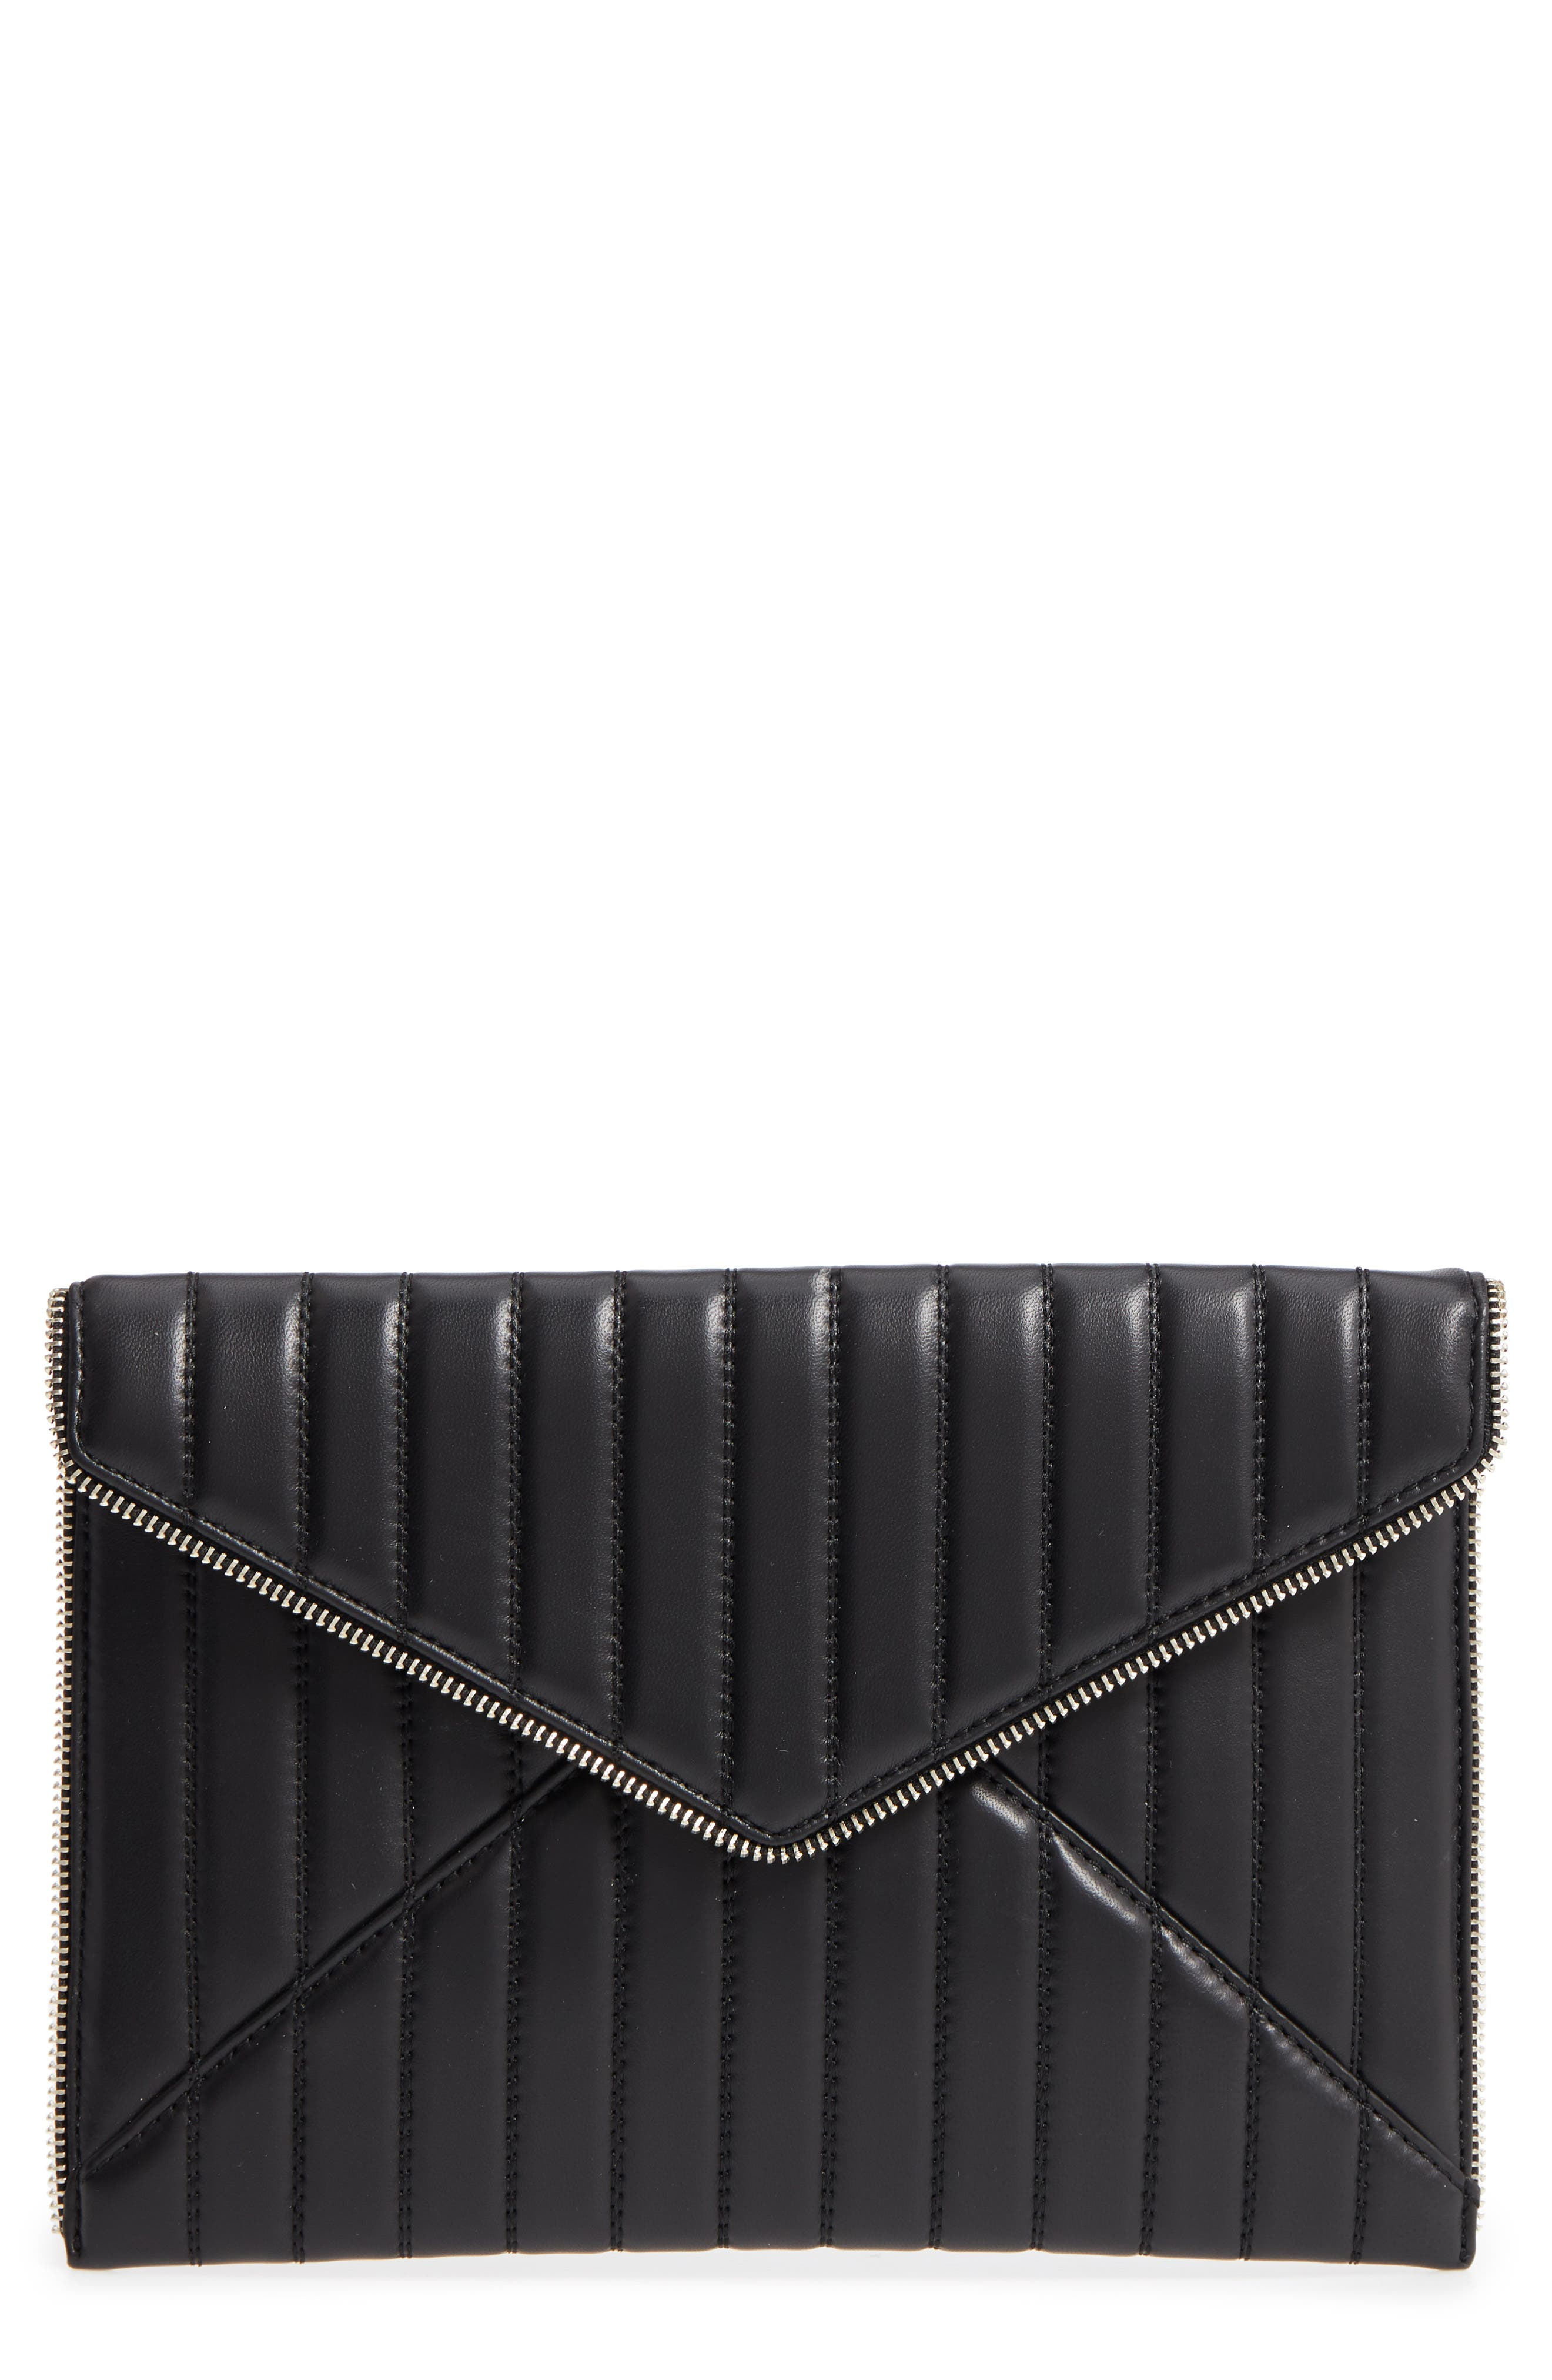 Leo Quilted Leather Clutch,                             Main thumbnail 1, color,                             001